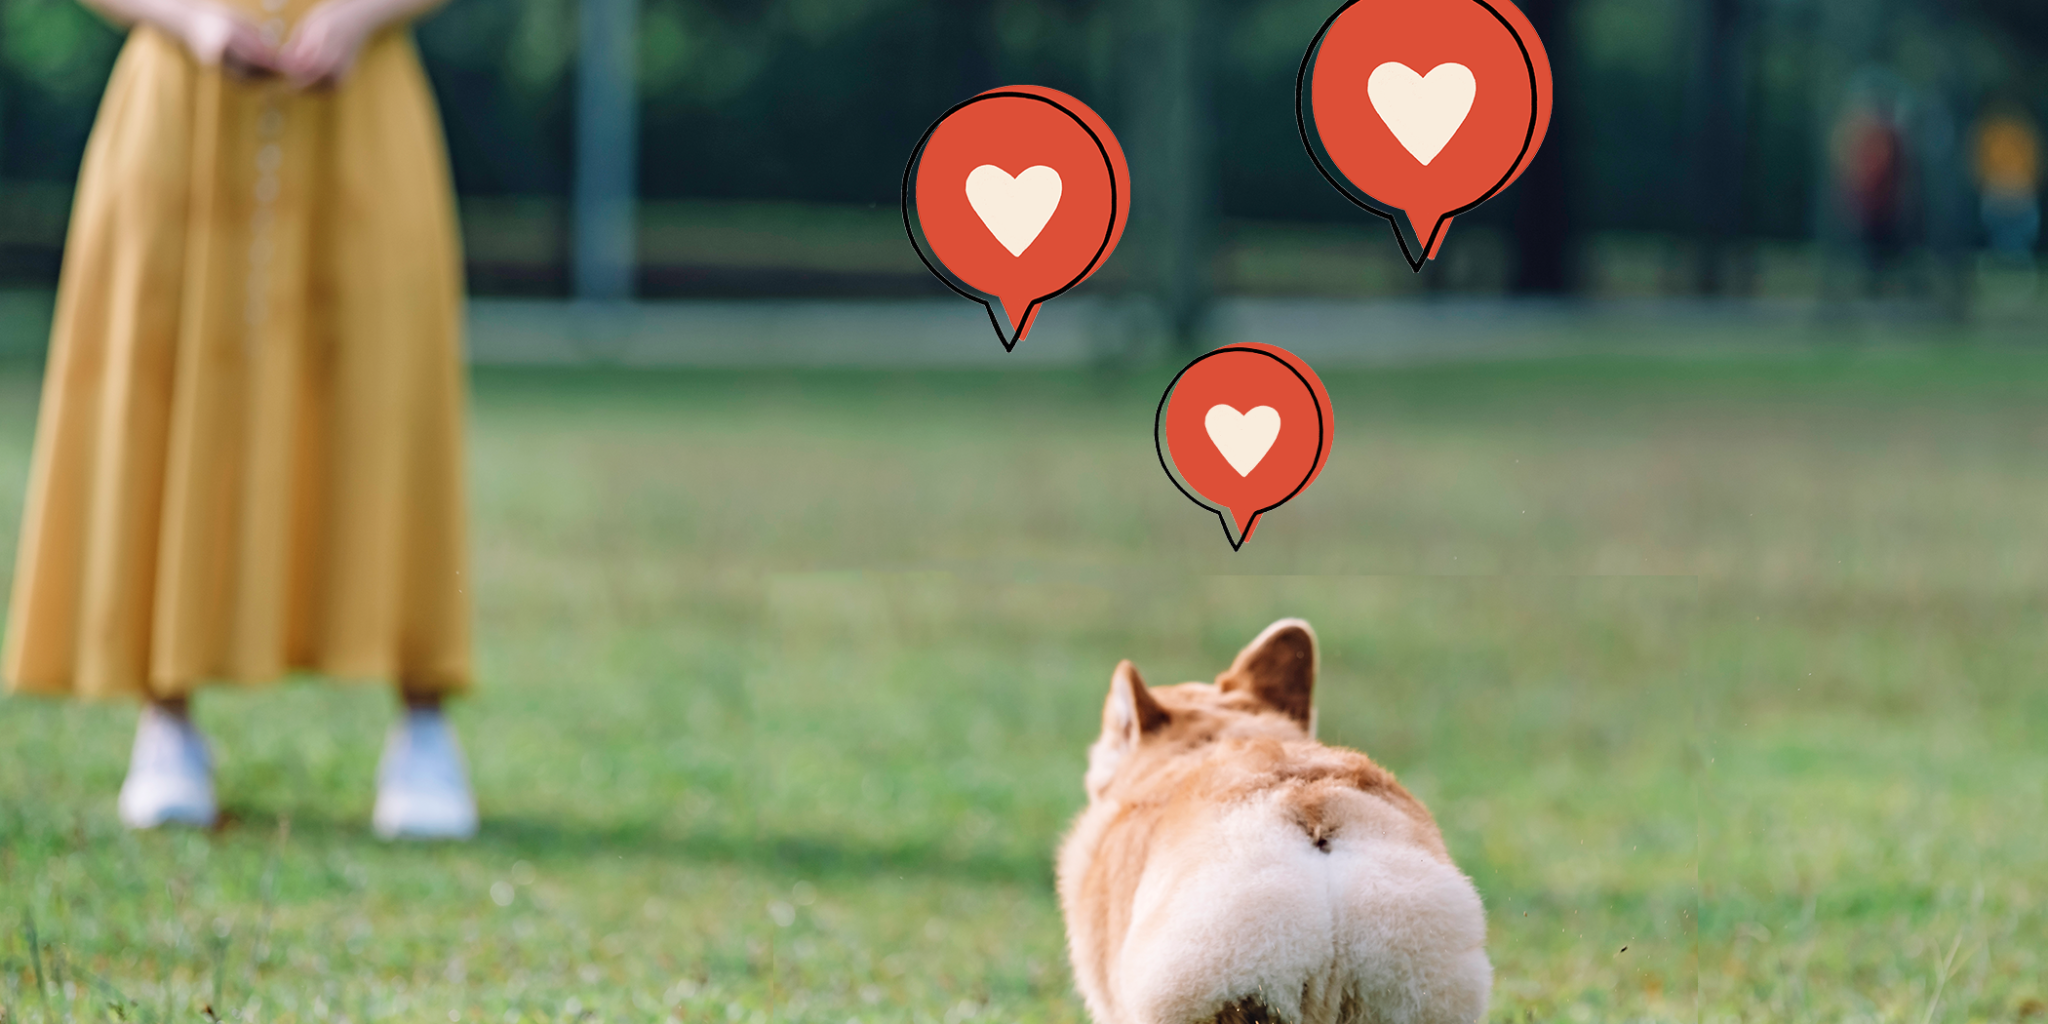 13 Corgi Butts That Will Drive You Absolutely Nuts